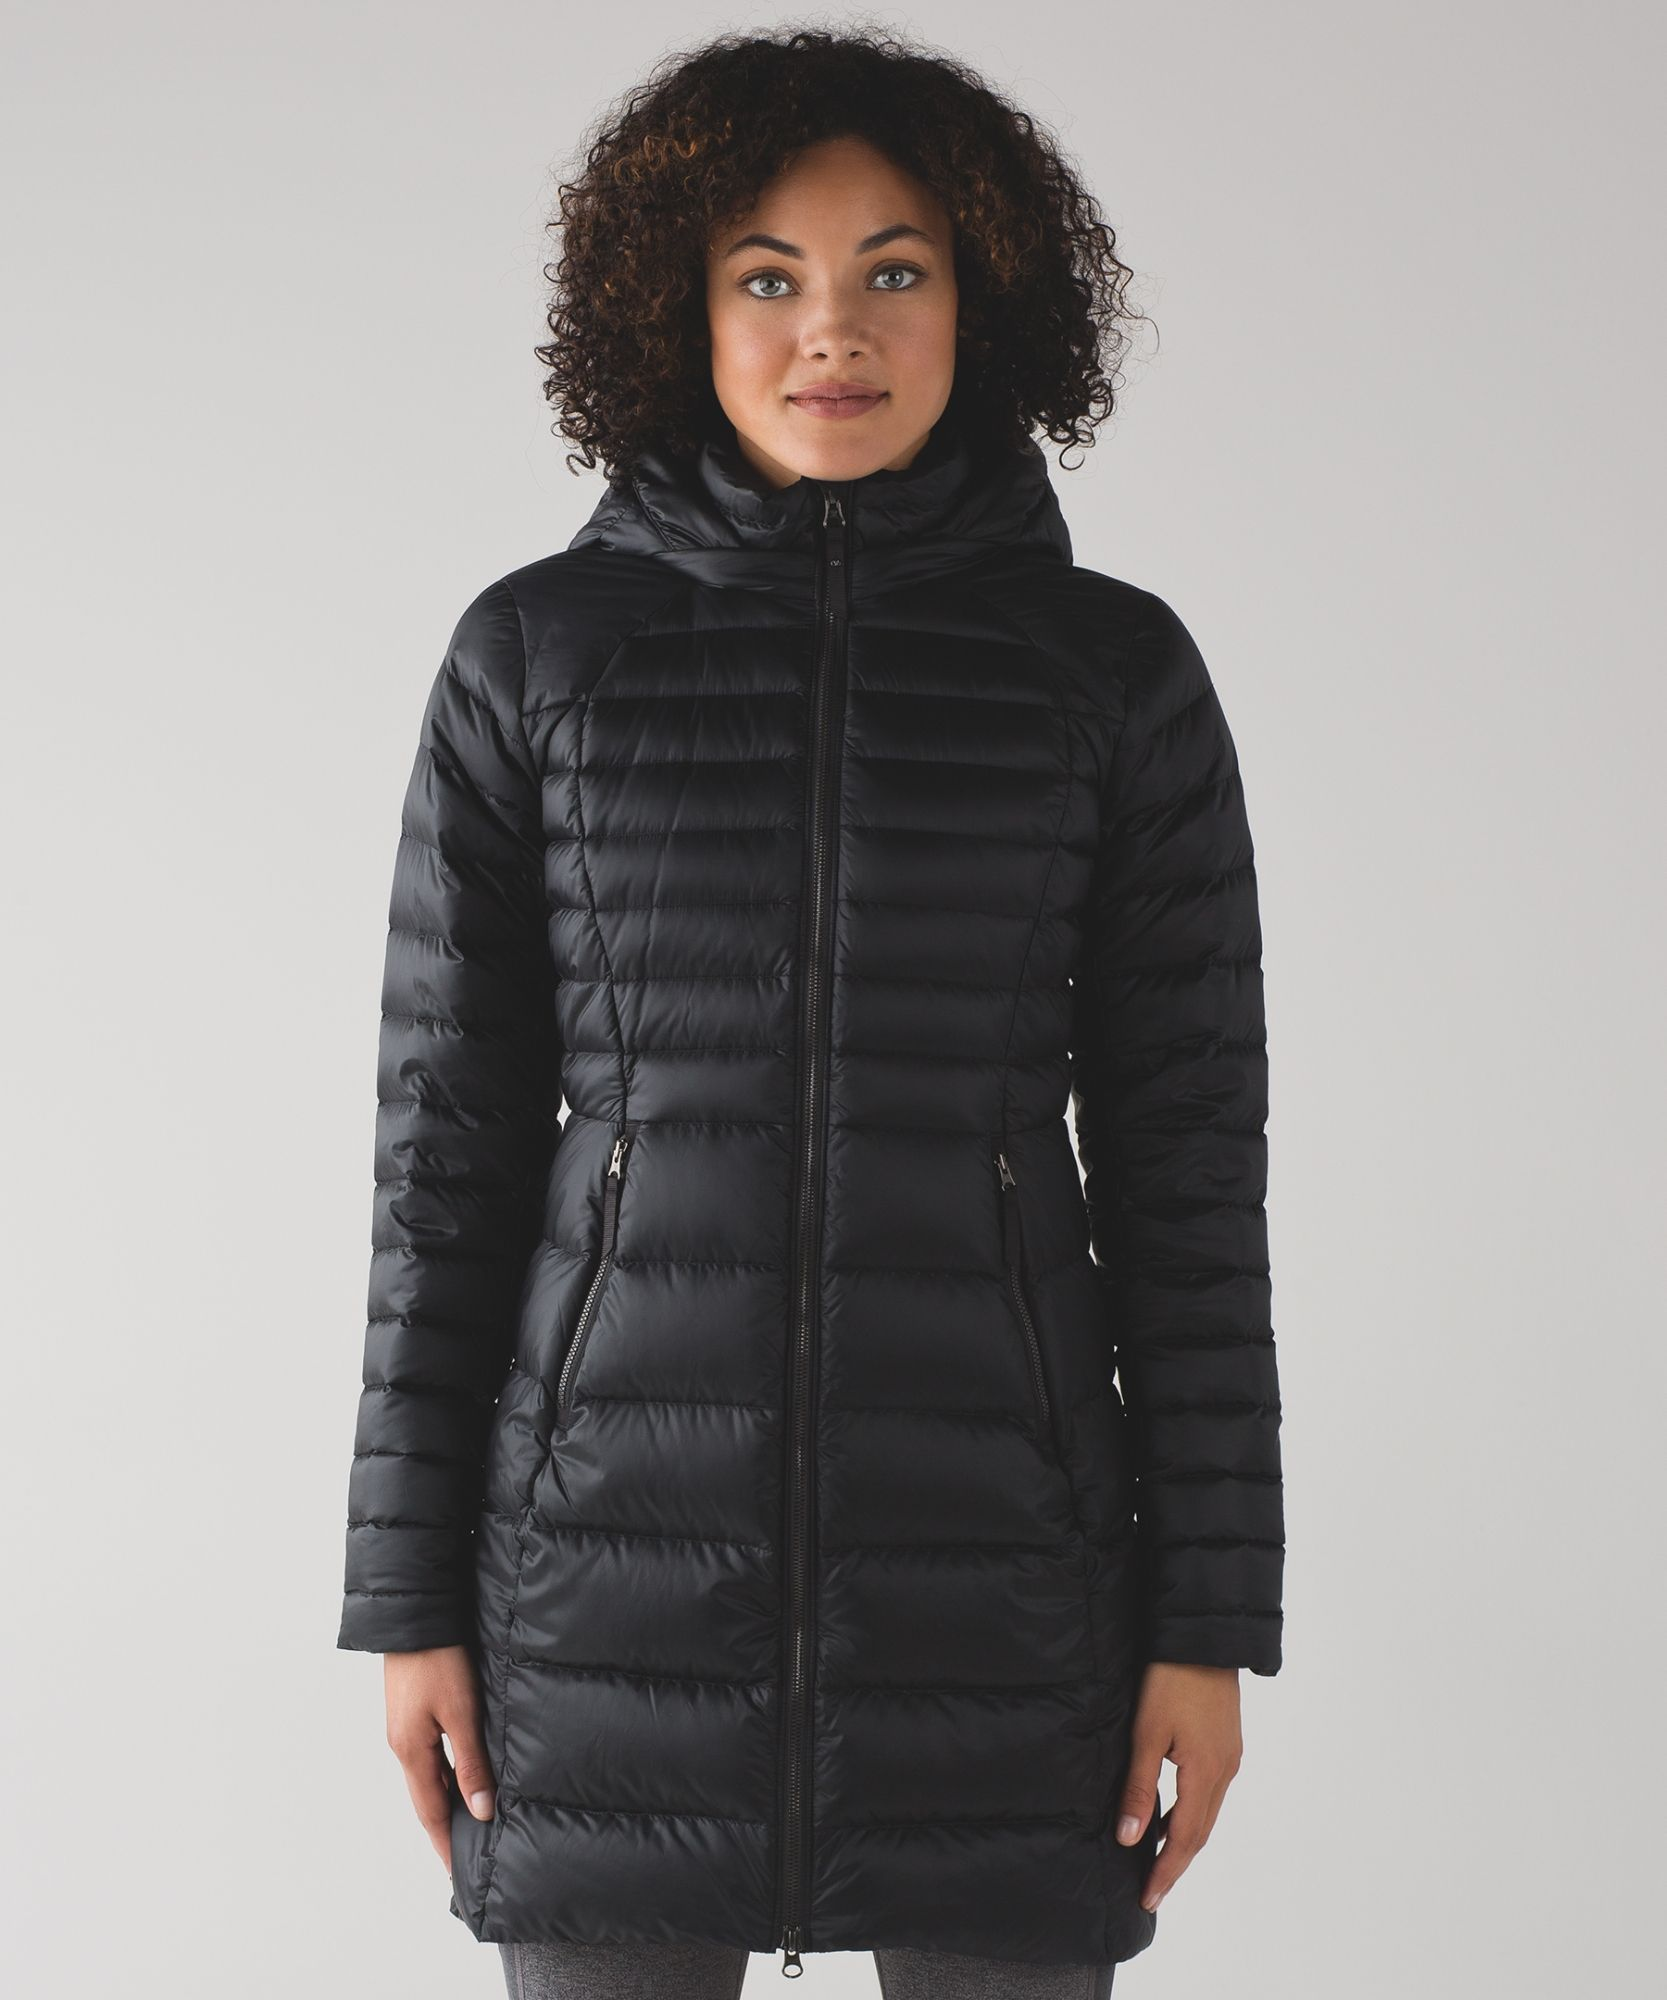 335a24a2a9b All the fluff without the puff—this down jacket was designed to keep you  warm